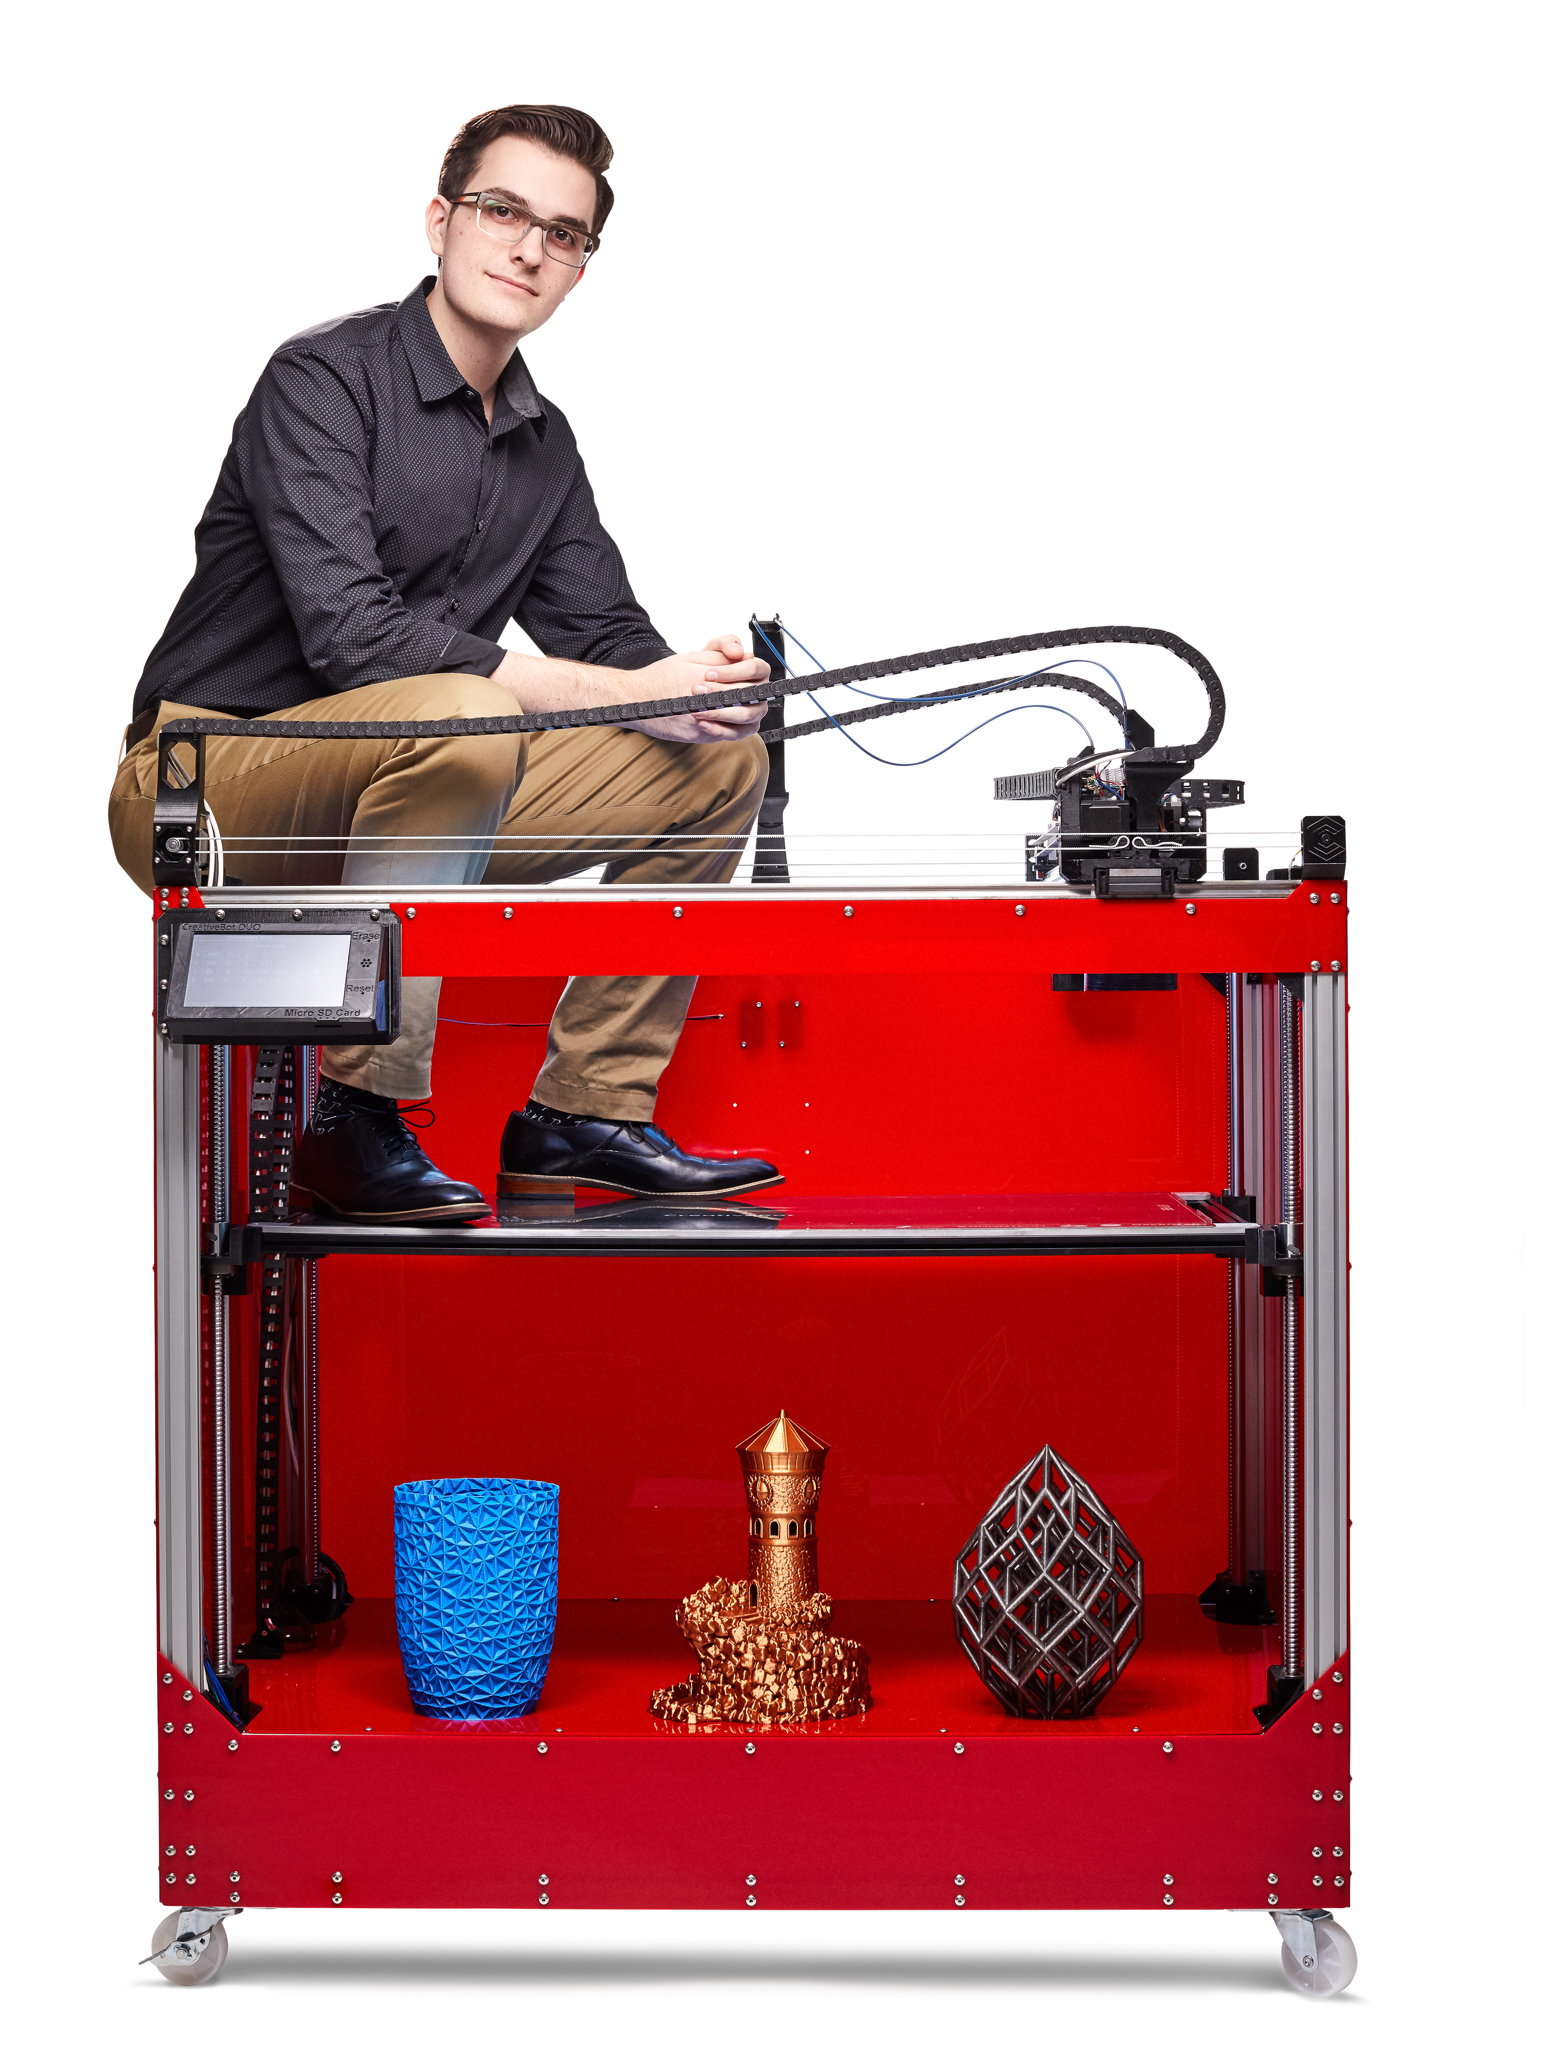 Baehrend seated on the CreativeBot Duo 3D printer. Photo via Creative 3D Technologies.